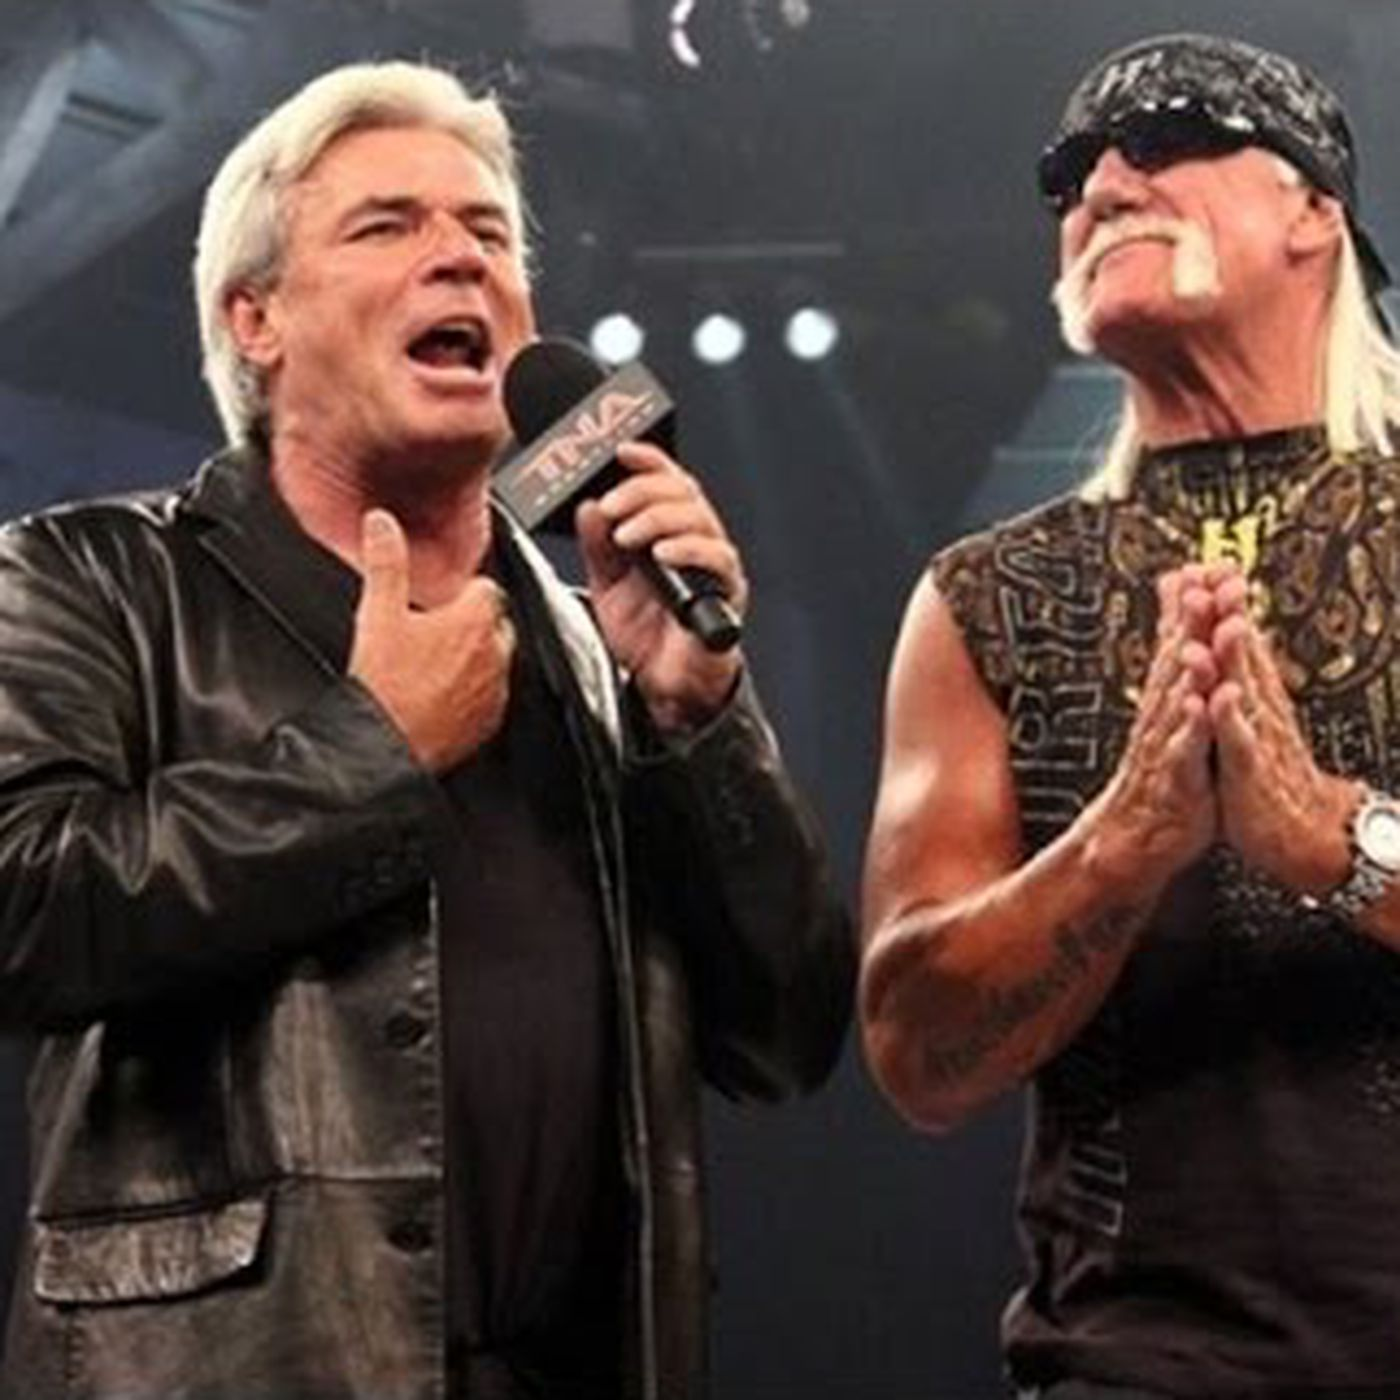 Eric Bischoff says he has no positive memories of TNA